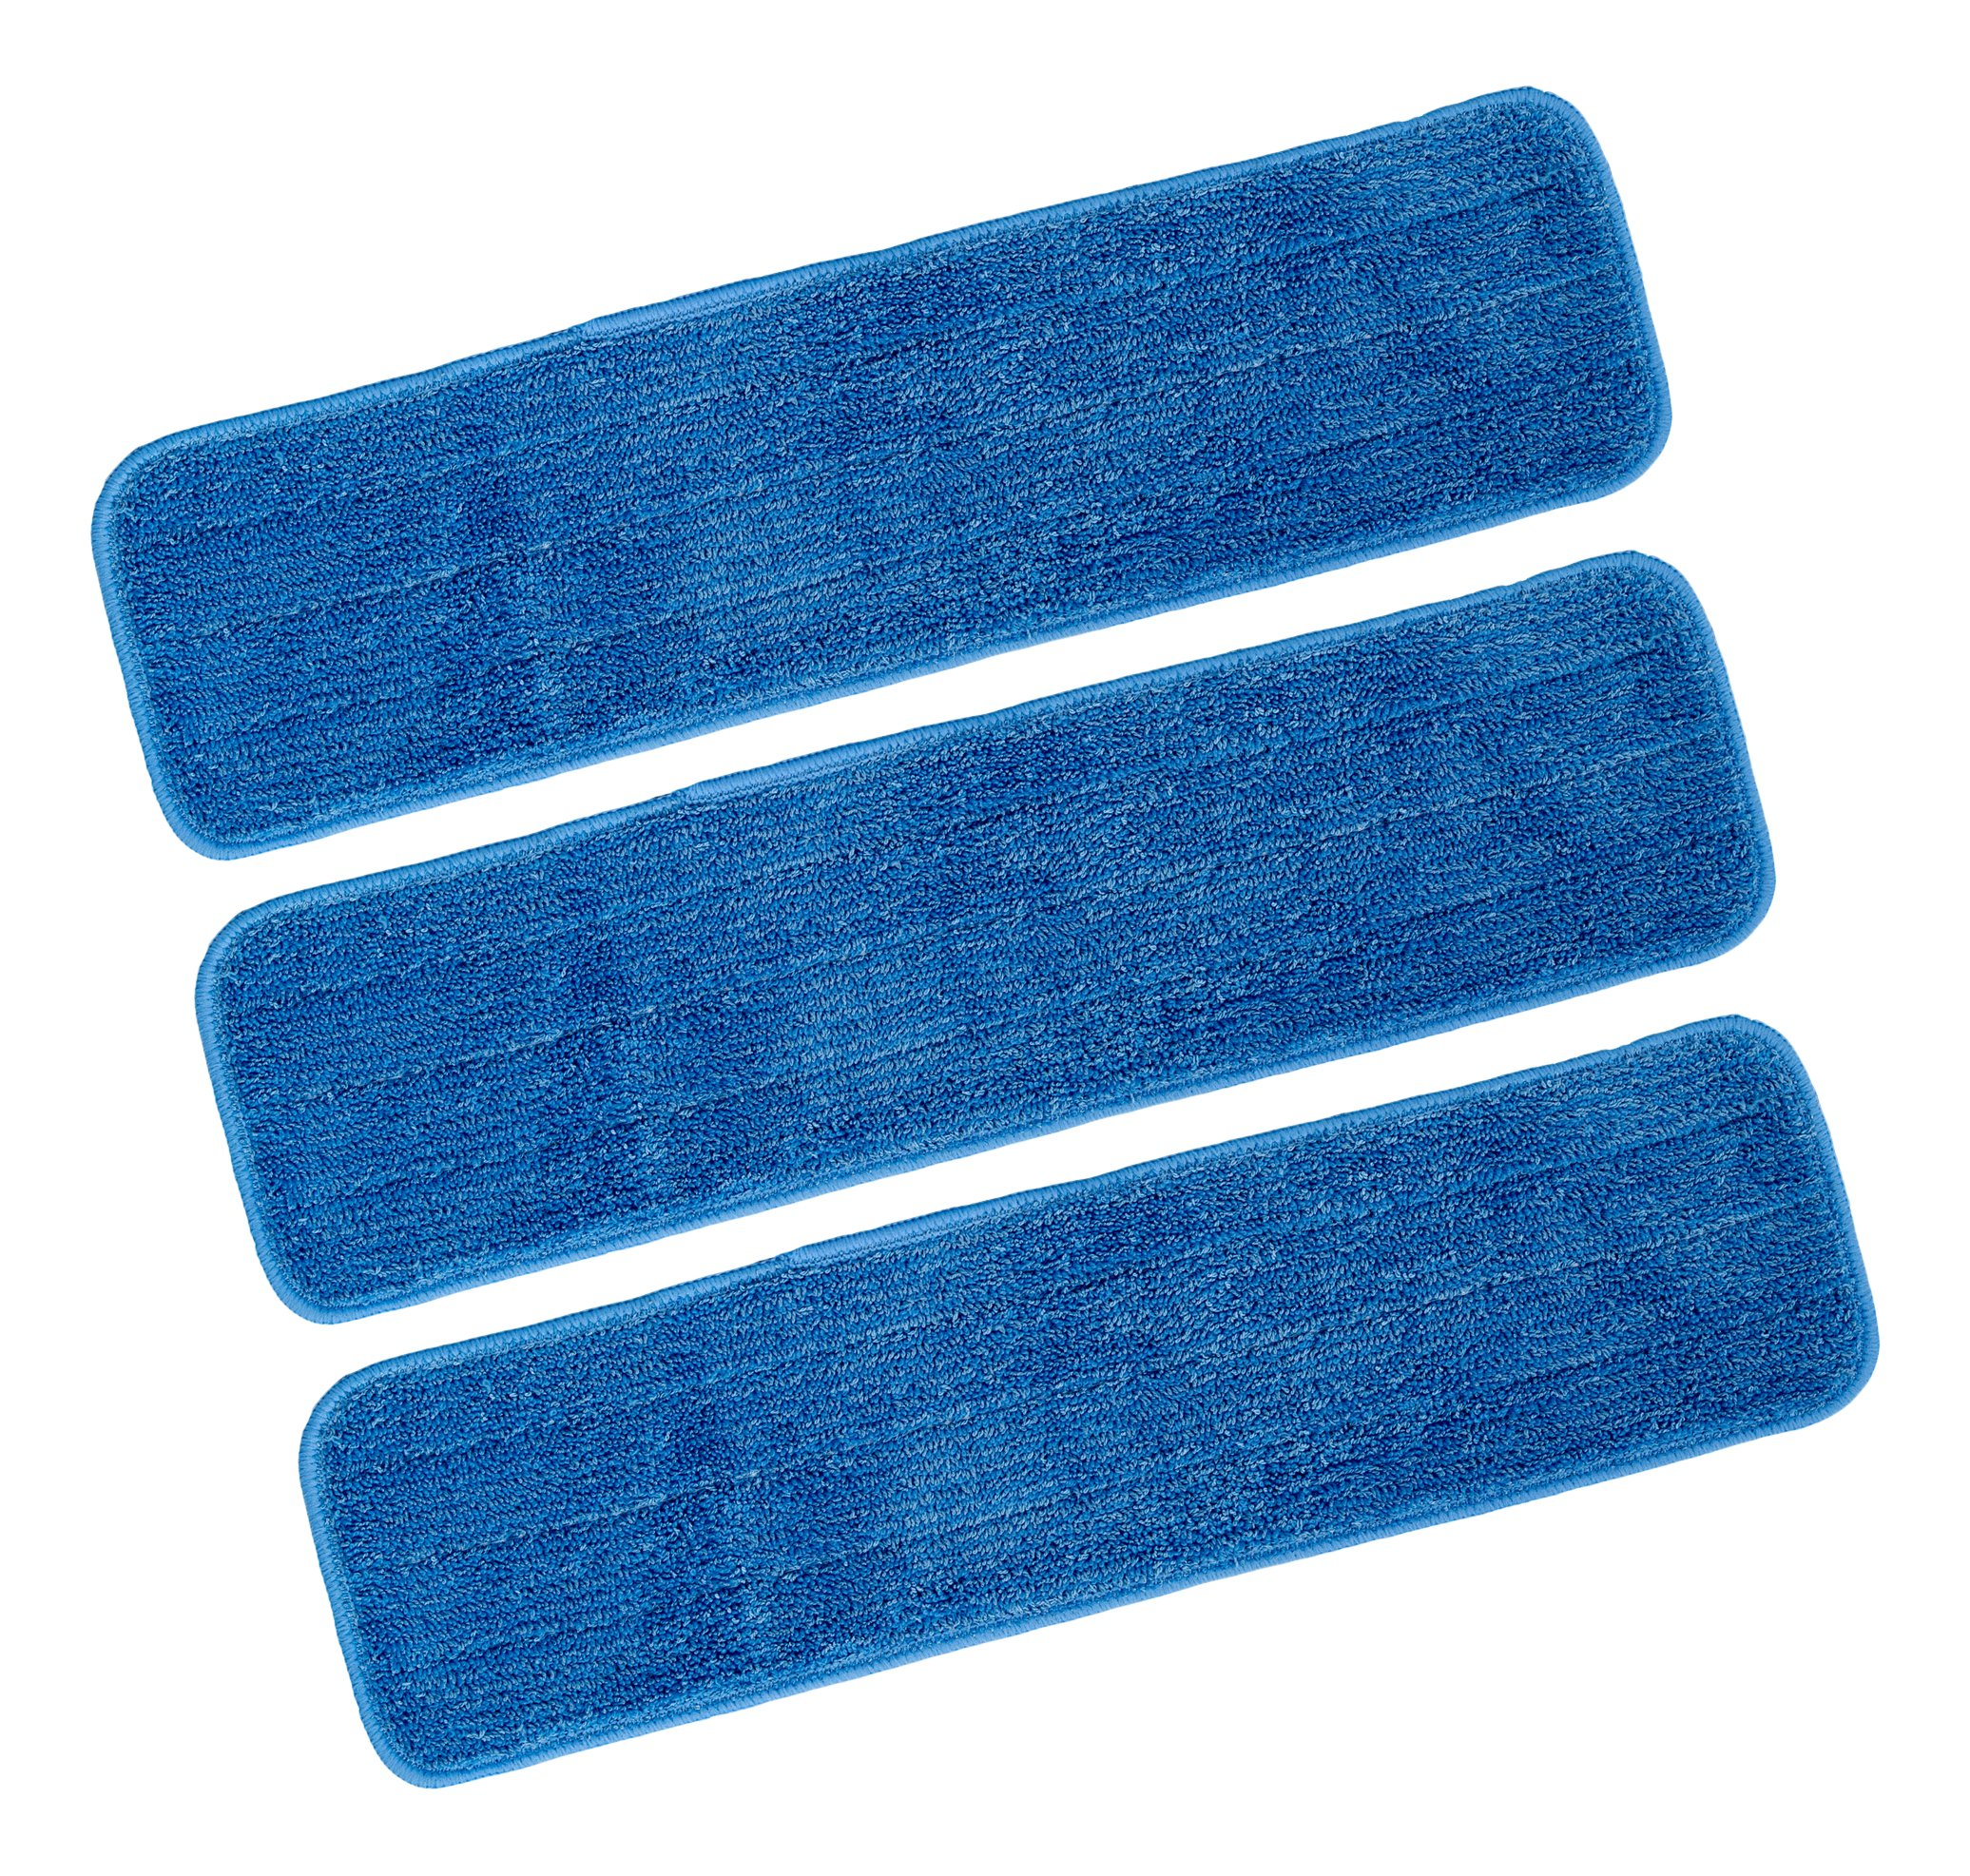 Brite & Clean Replacement Wet Pads for A-BC-SP Floor Mop with Spray Nozzle (Pack of 16)